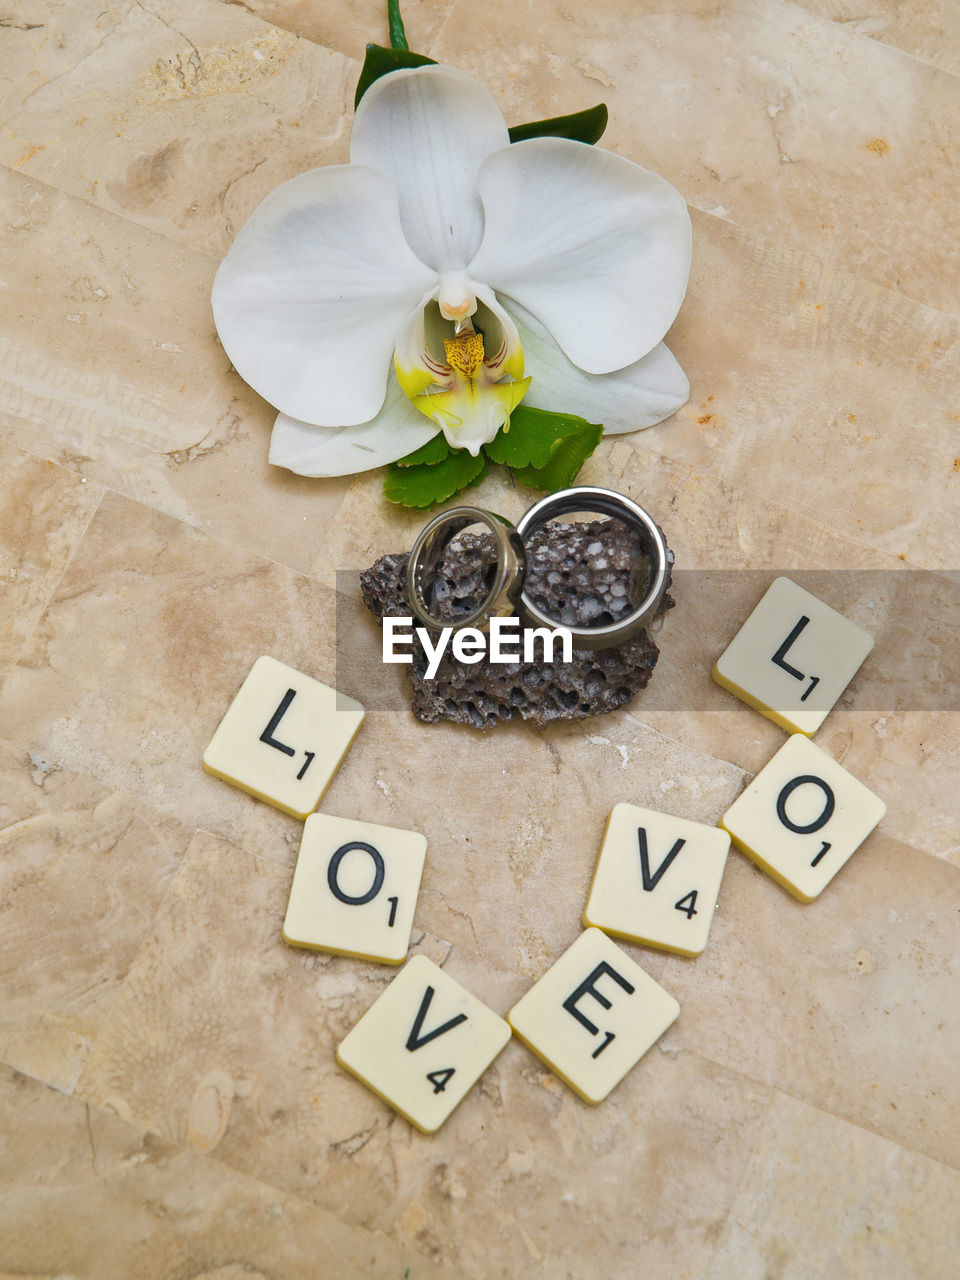 High Angle View Of Wedding Rings By Flower And Alphabets On Toy Blocks